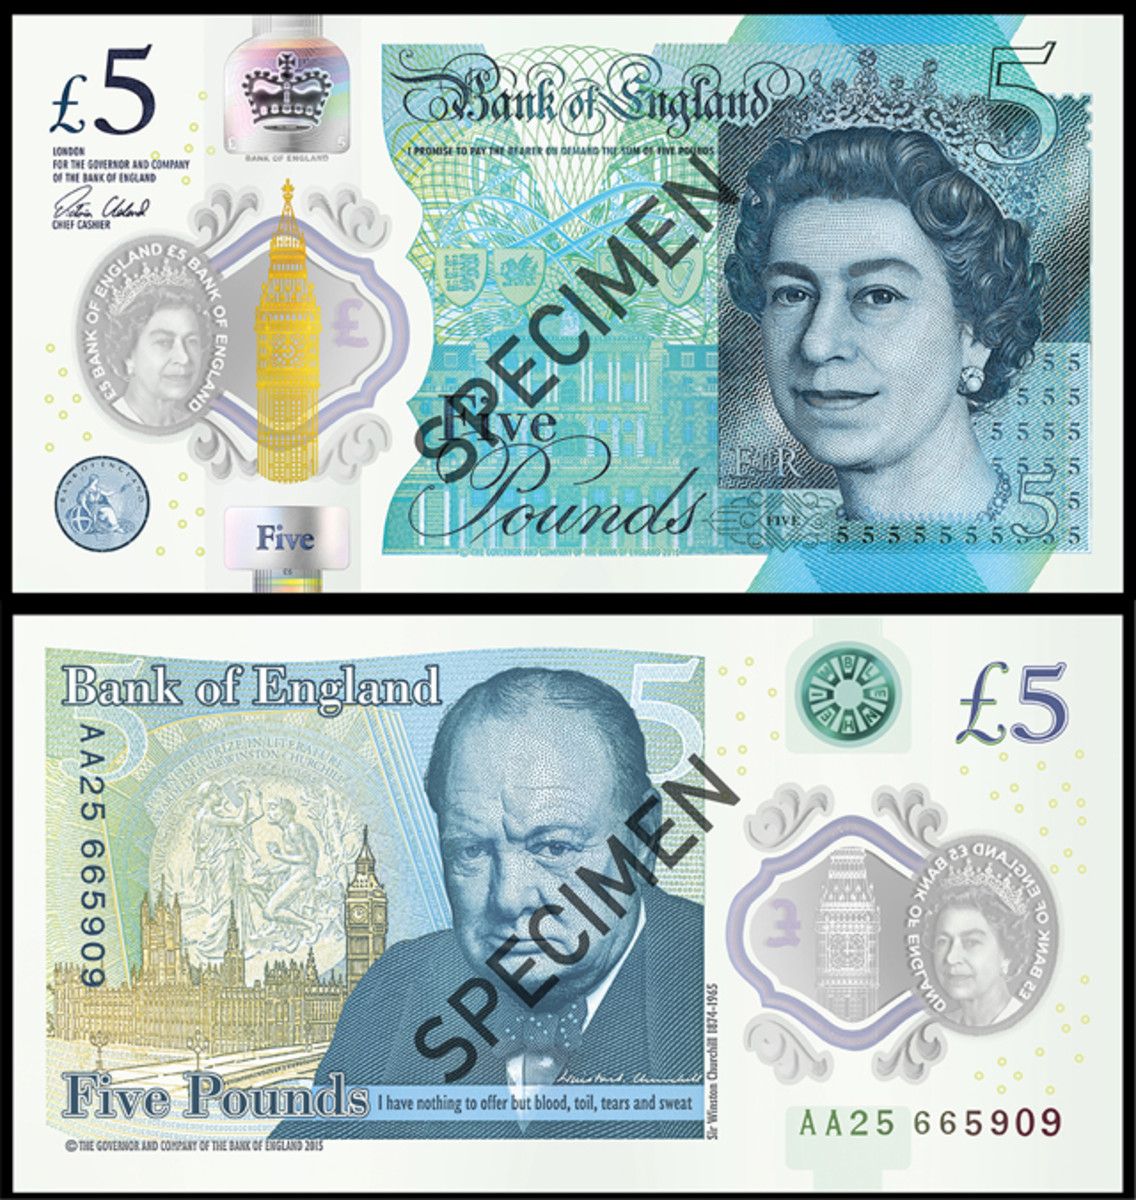 Face and back of the Bank Of England's new £5 note to be released in September. This is the bank's first polymer issue. Images courtesy & © Bank of England.